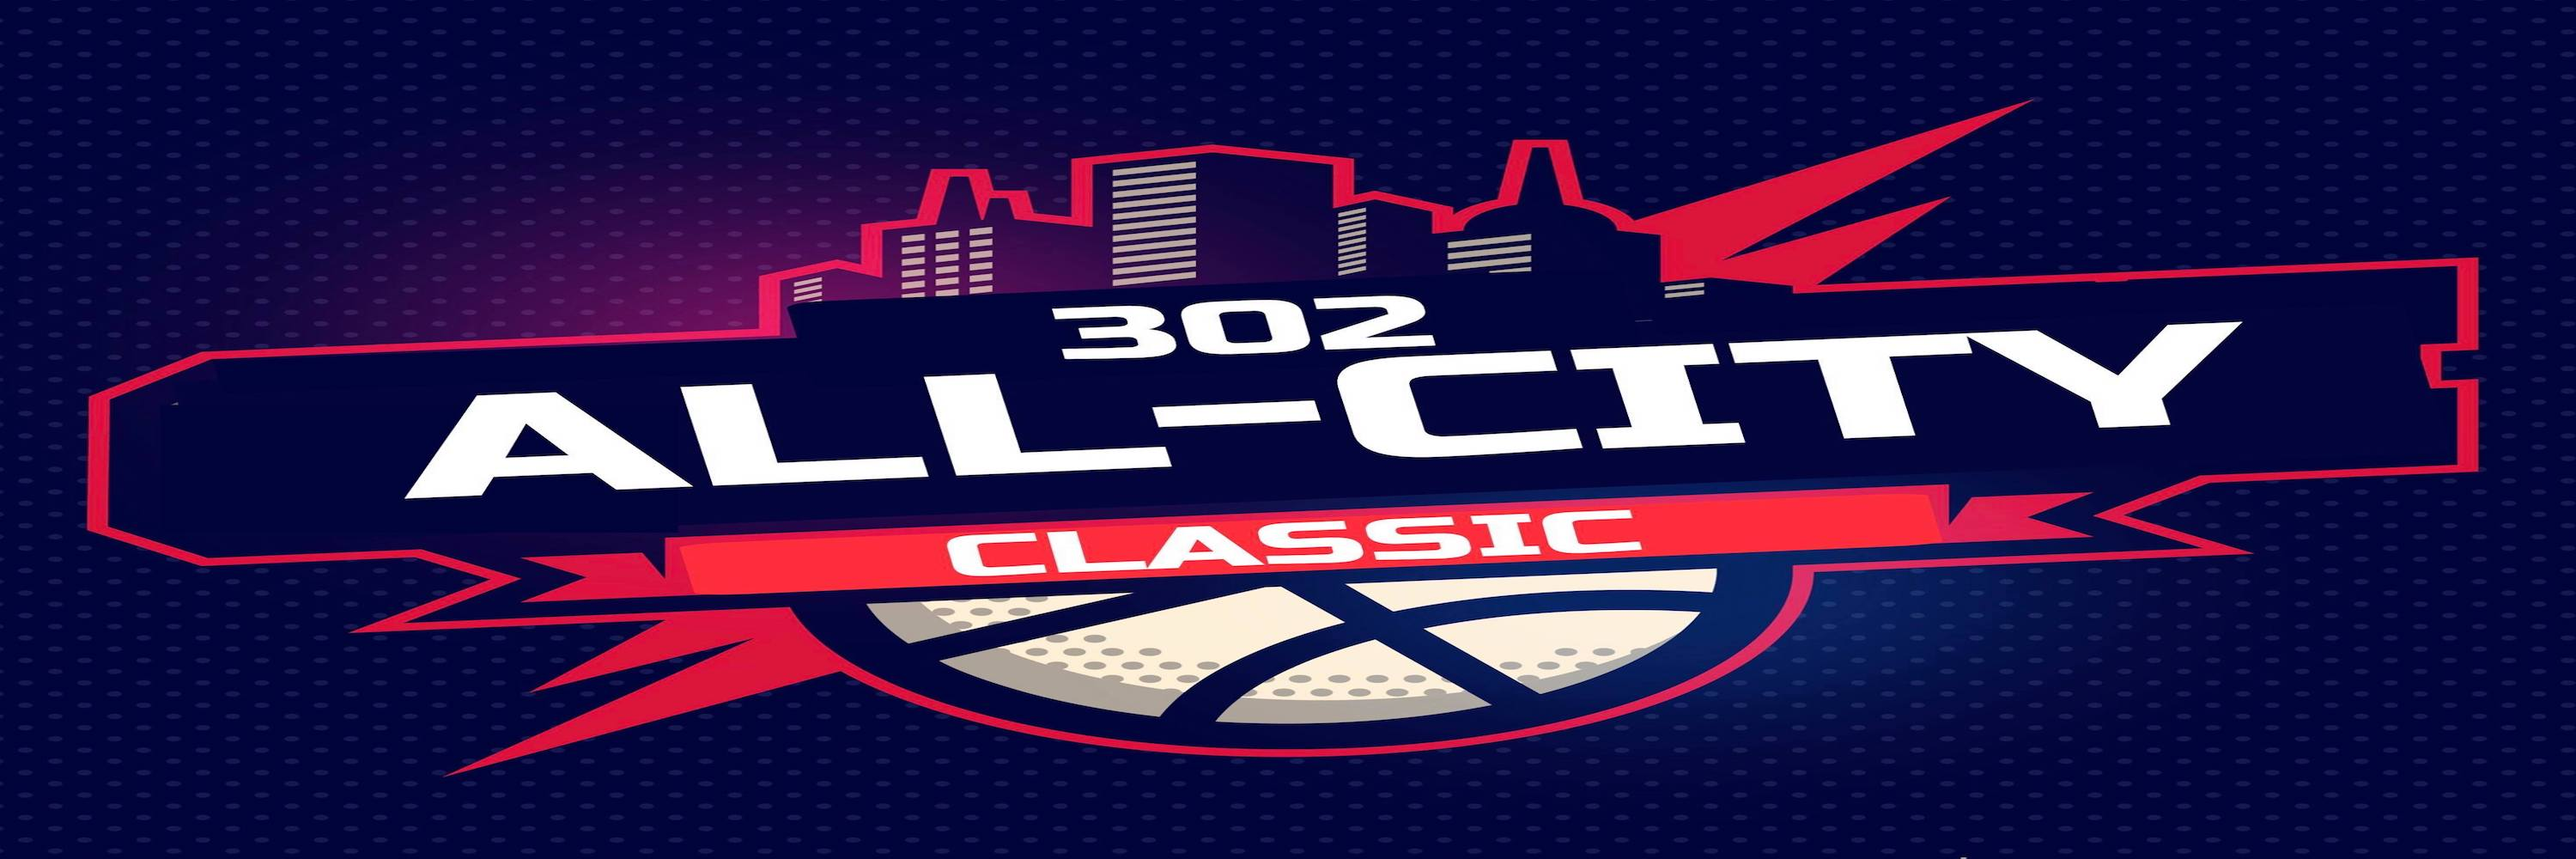 All-City Classic 302 Legends League